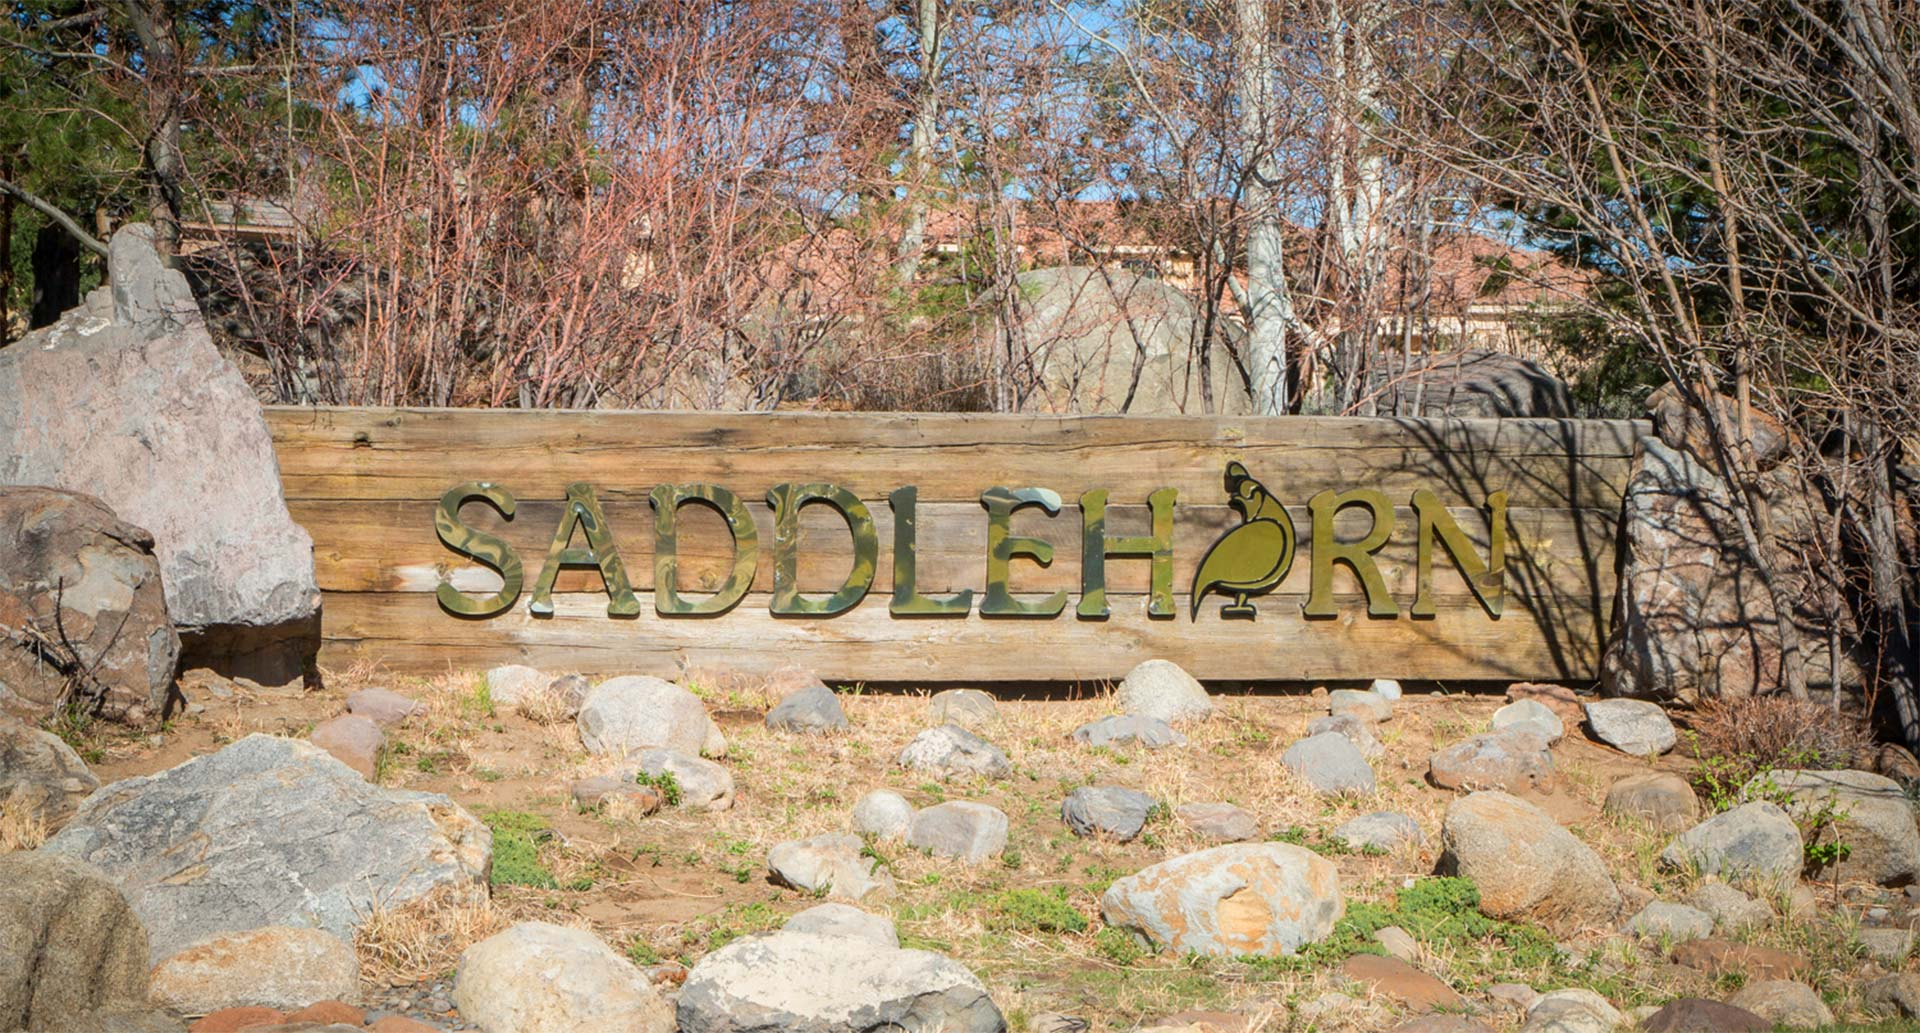 saddlehorn homes for sale reno nv